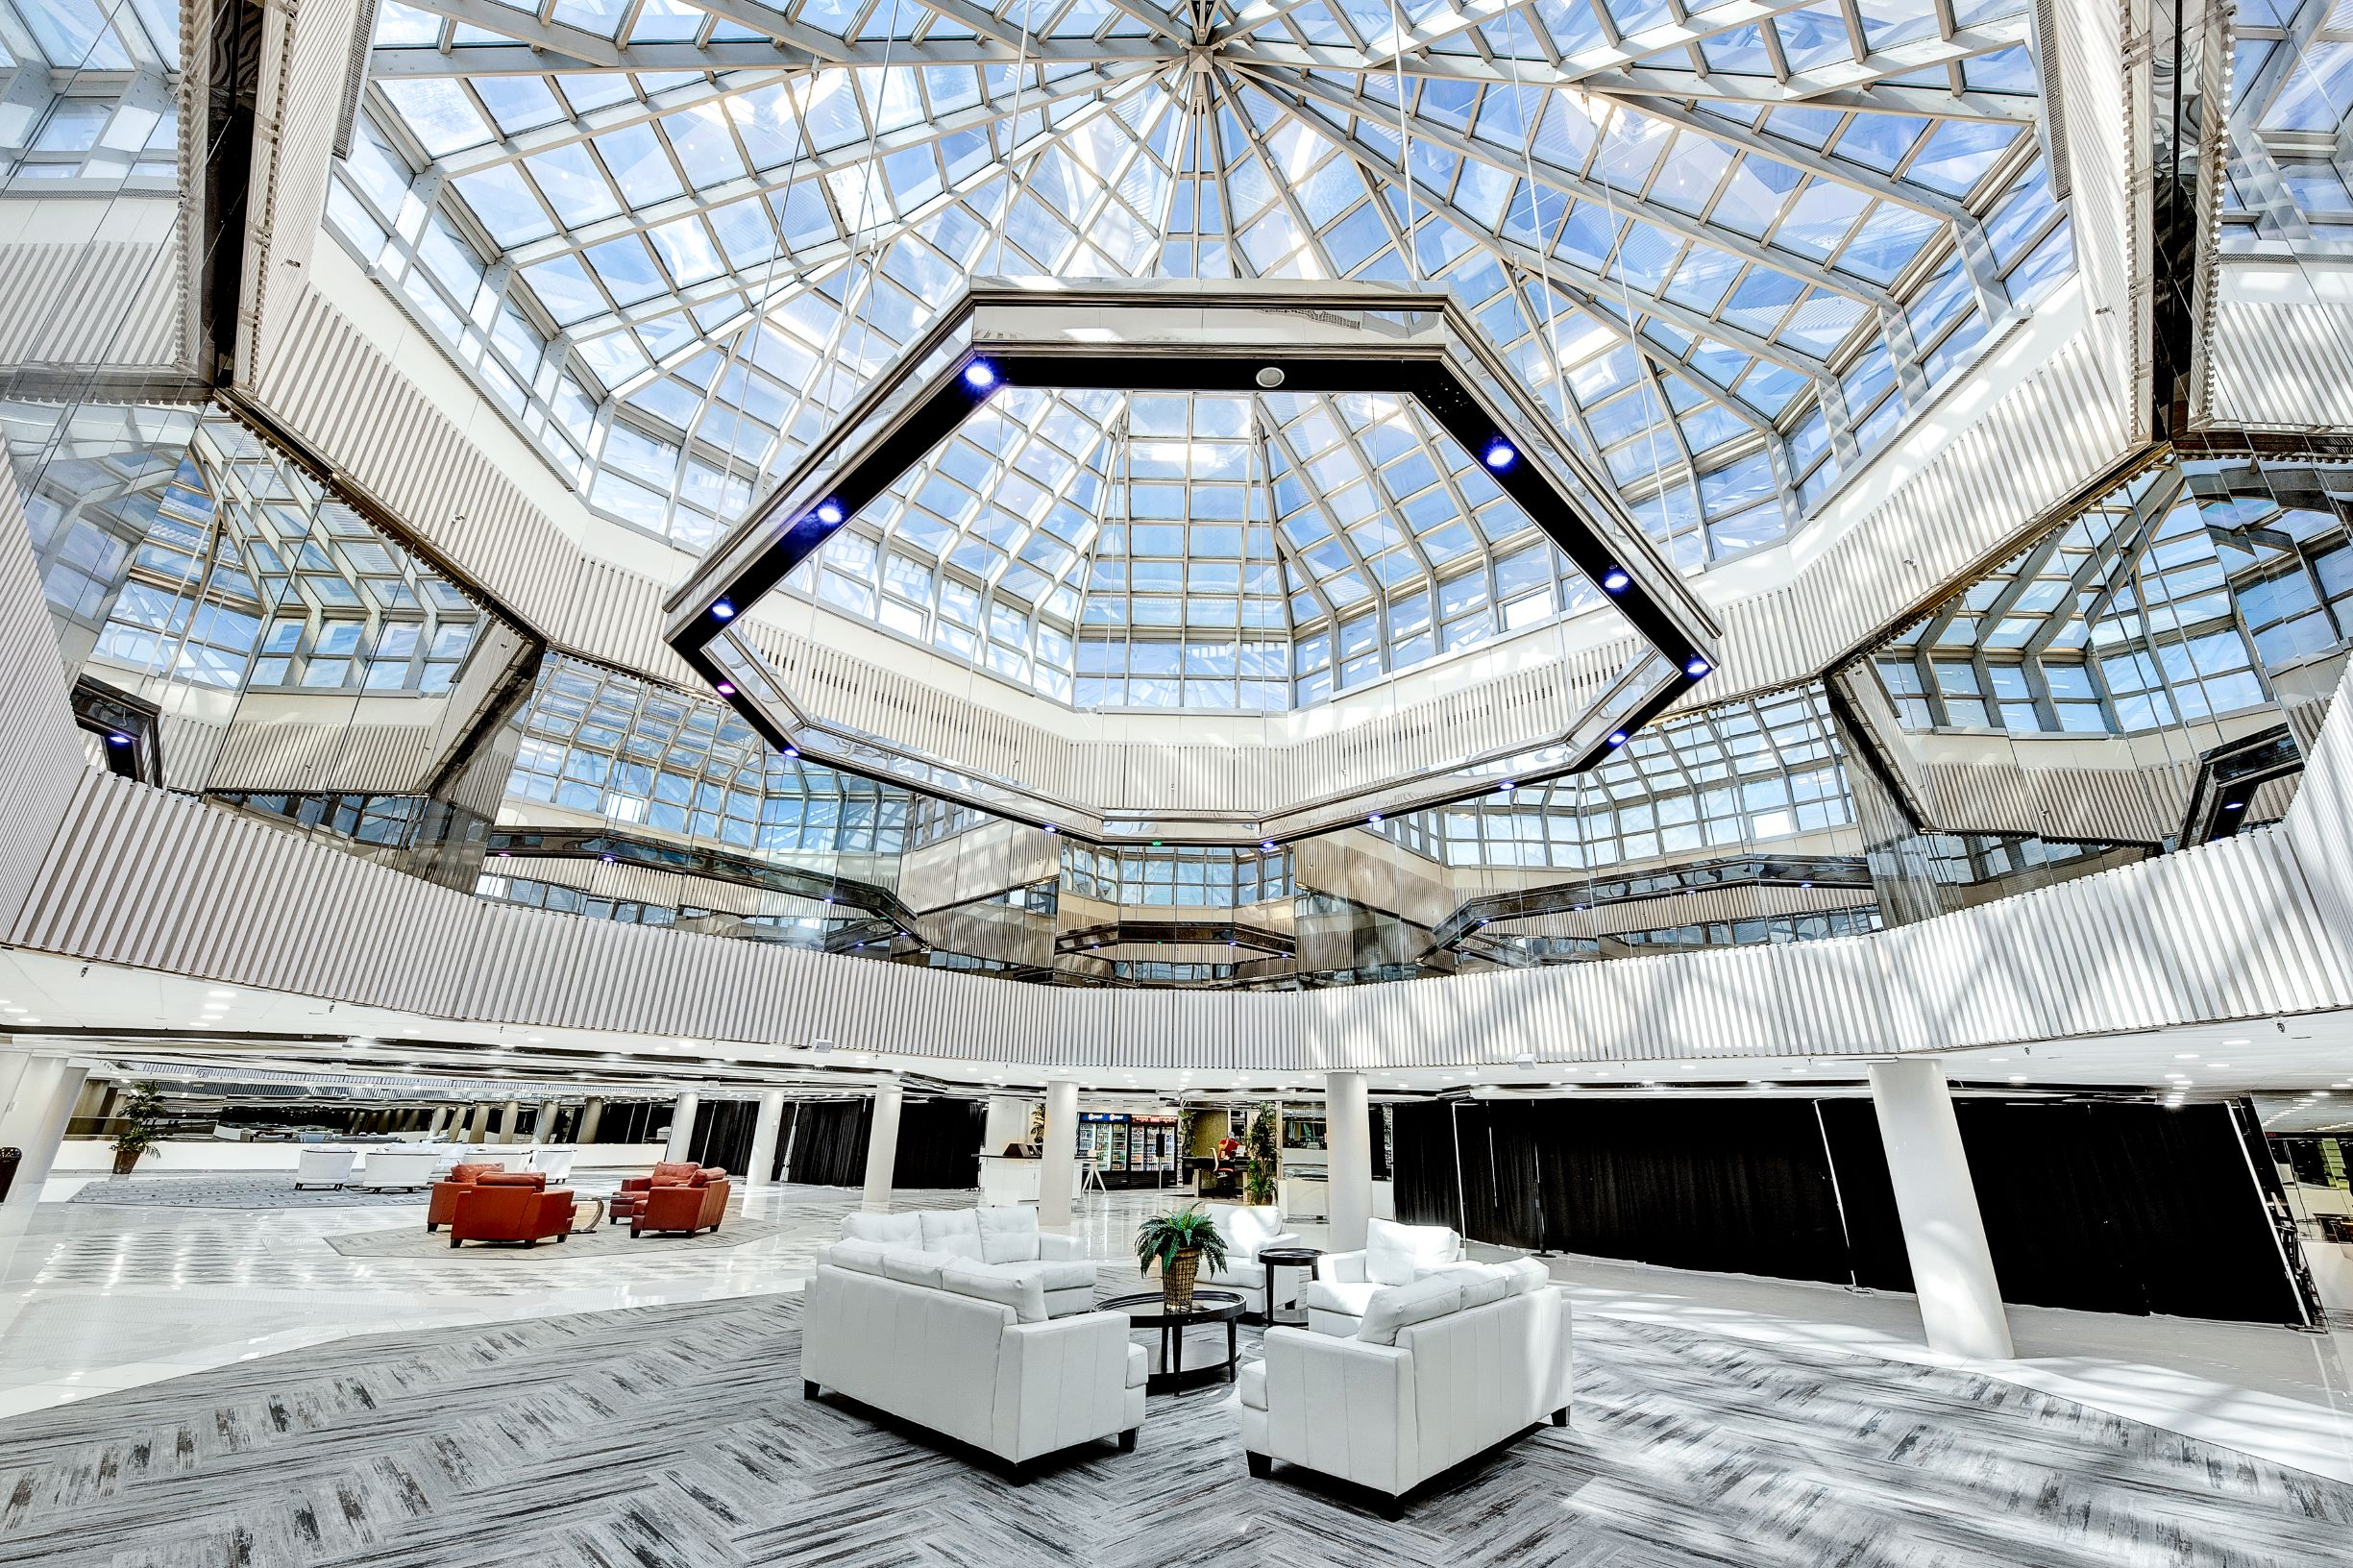 The Summit at Danbury Central Atrium